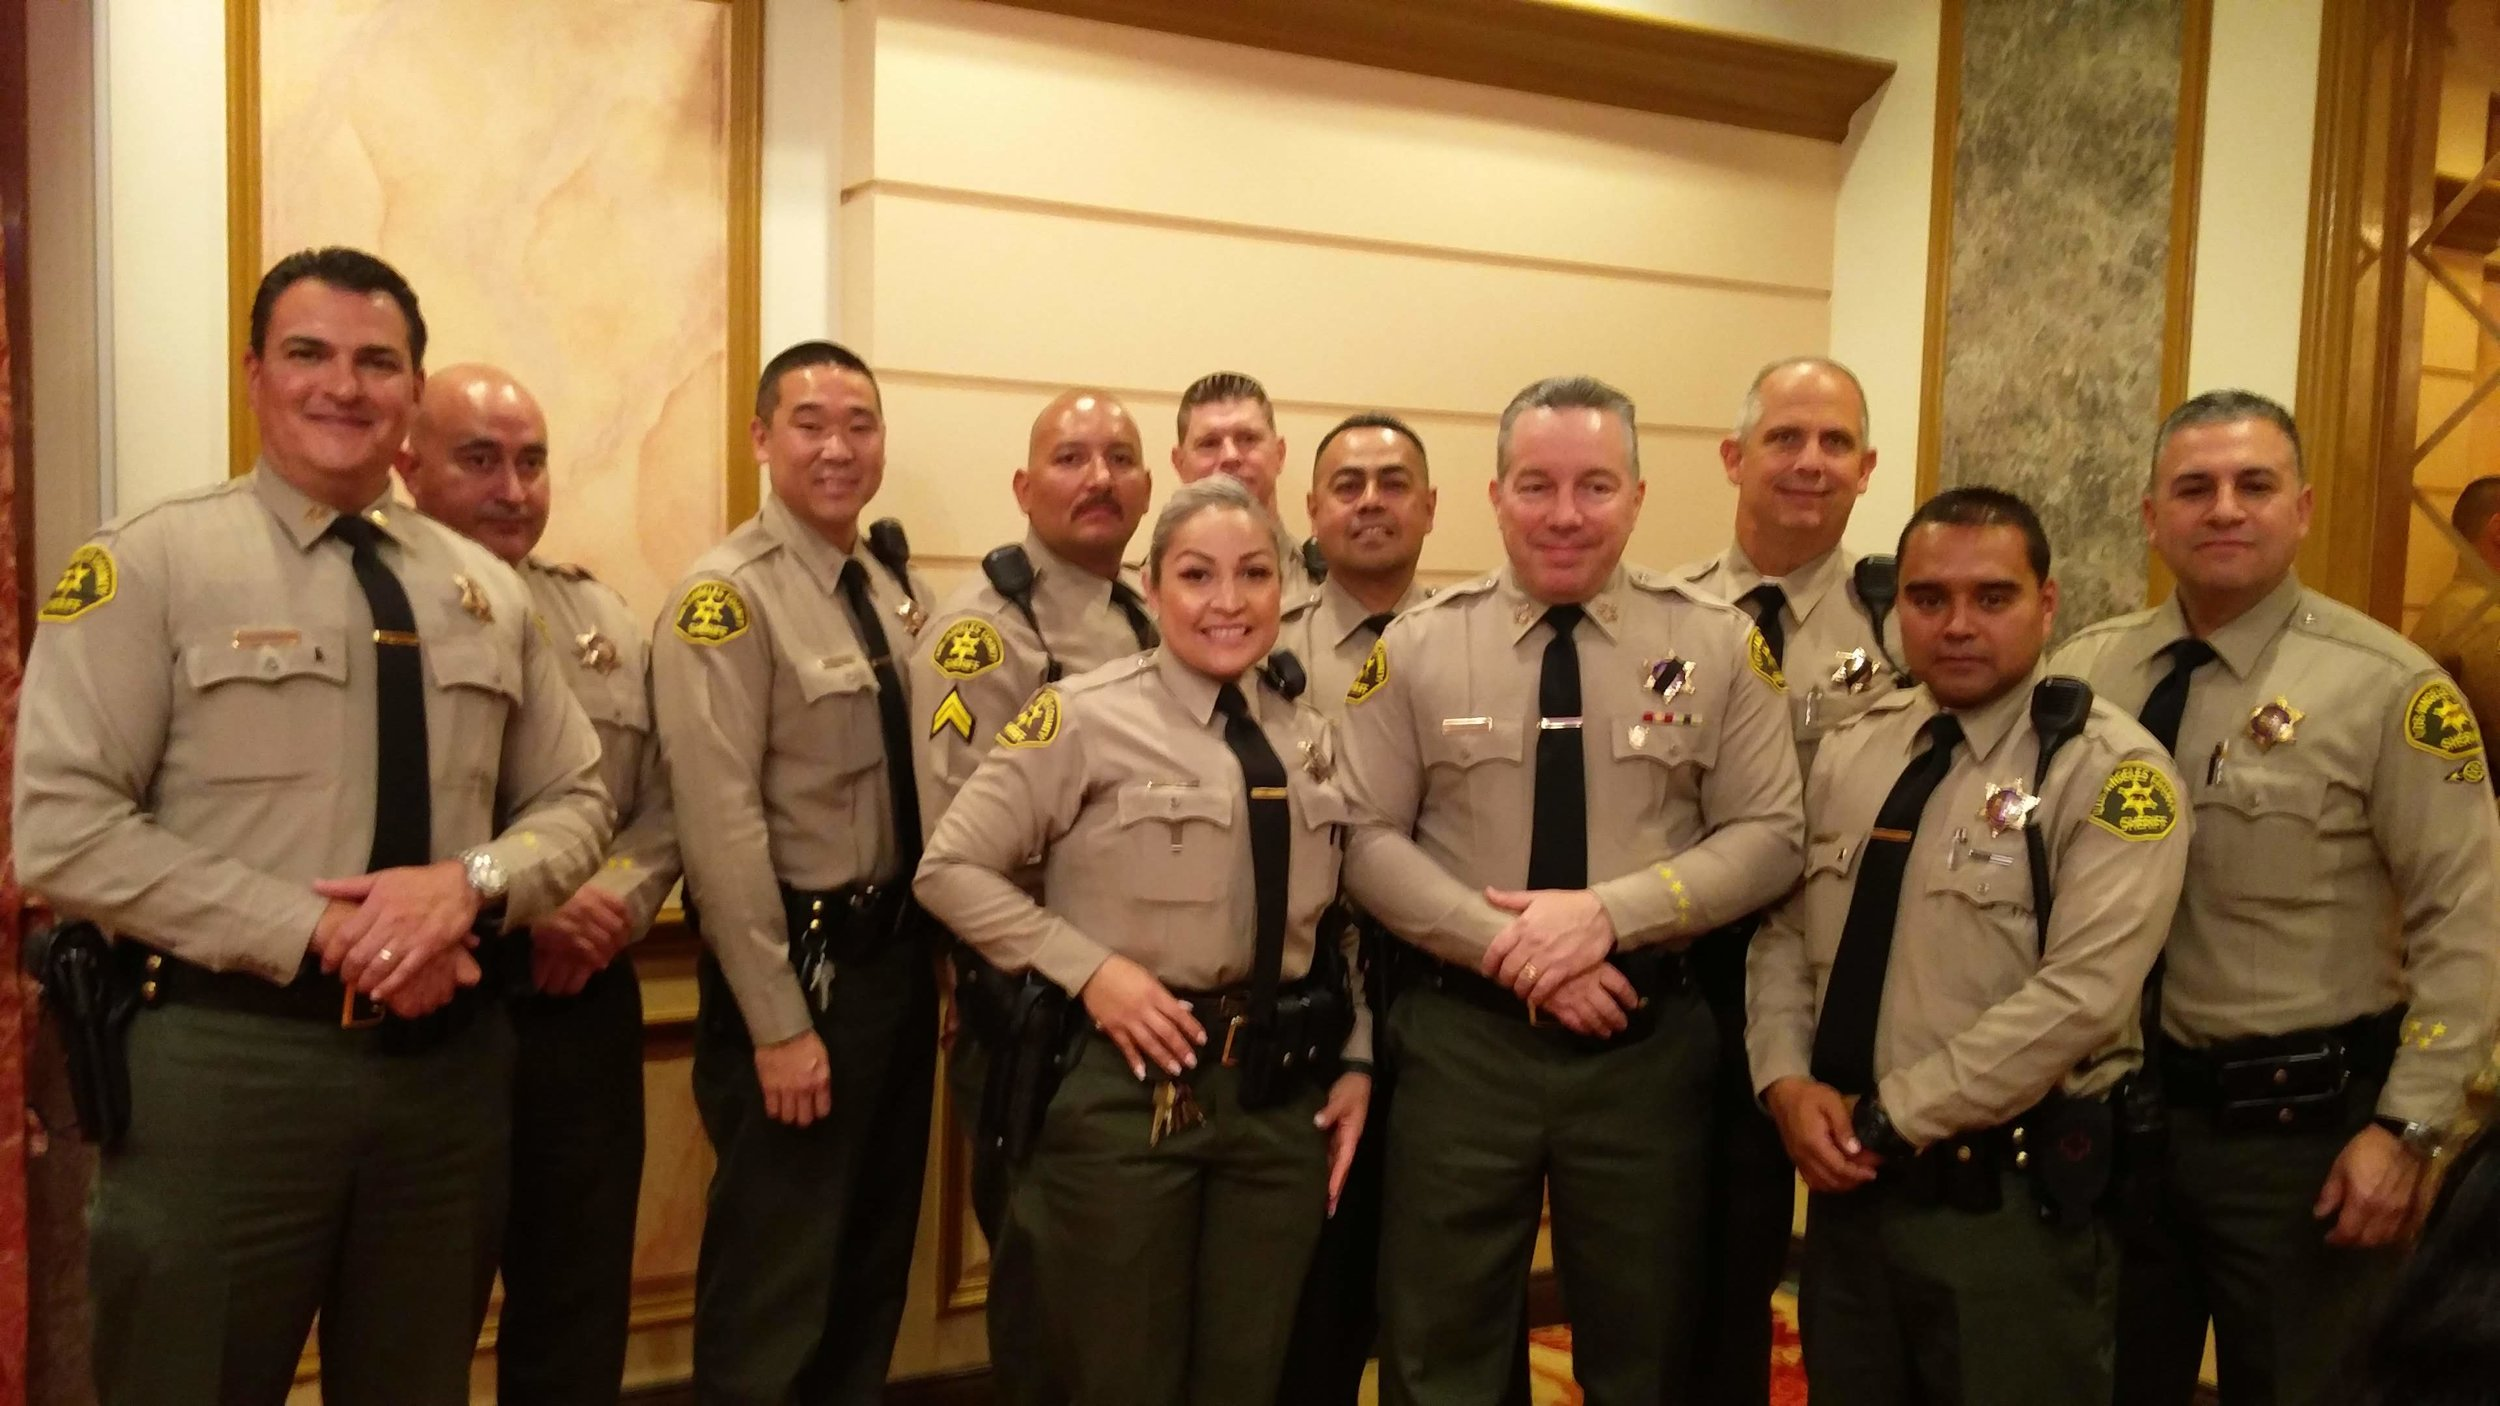 LASD Sheriff Alex Villanueva Welcome Luncheon, January 2019